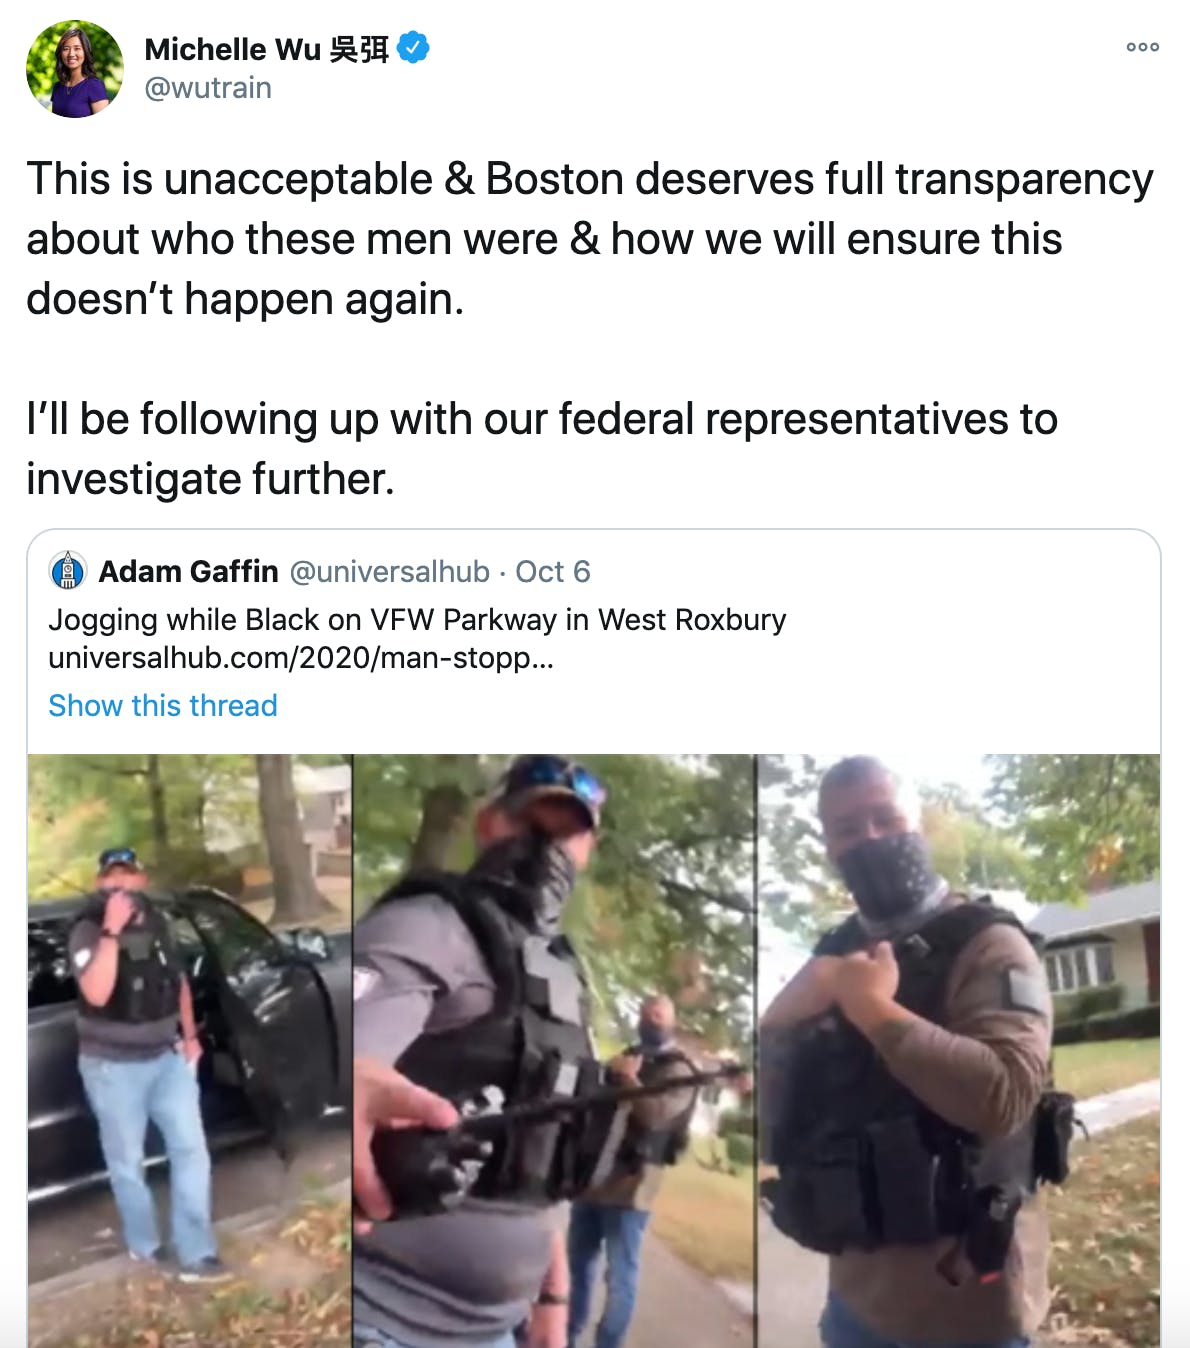 This is unacceptable & Boston deserves full transparency about who these men were & how we will ensure this doesn't happen again.  I'll be following up with our federal representatives to investigate further.